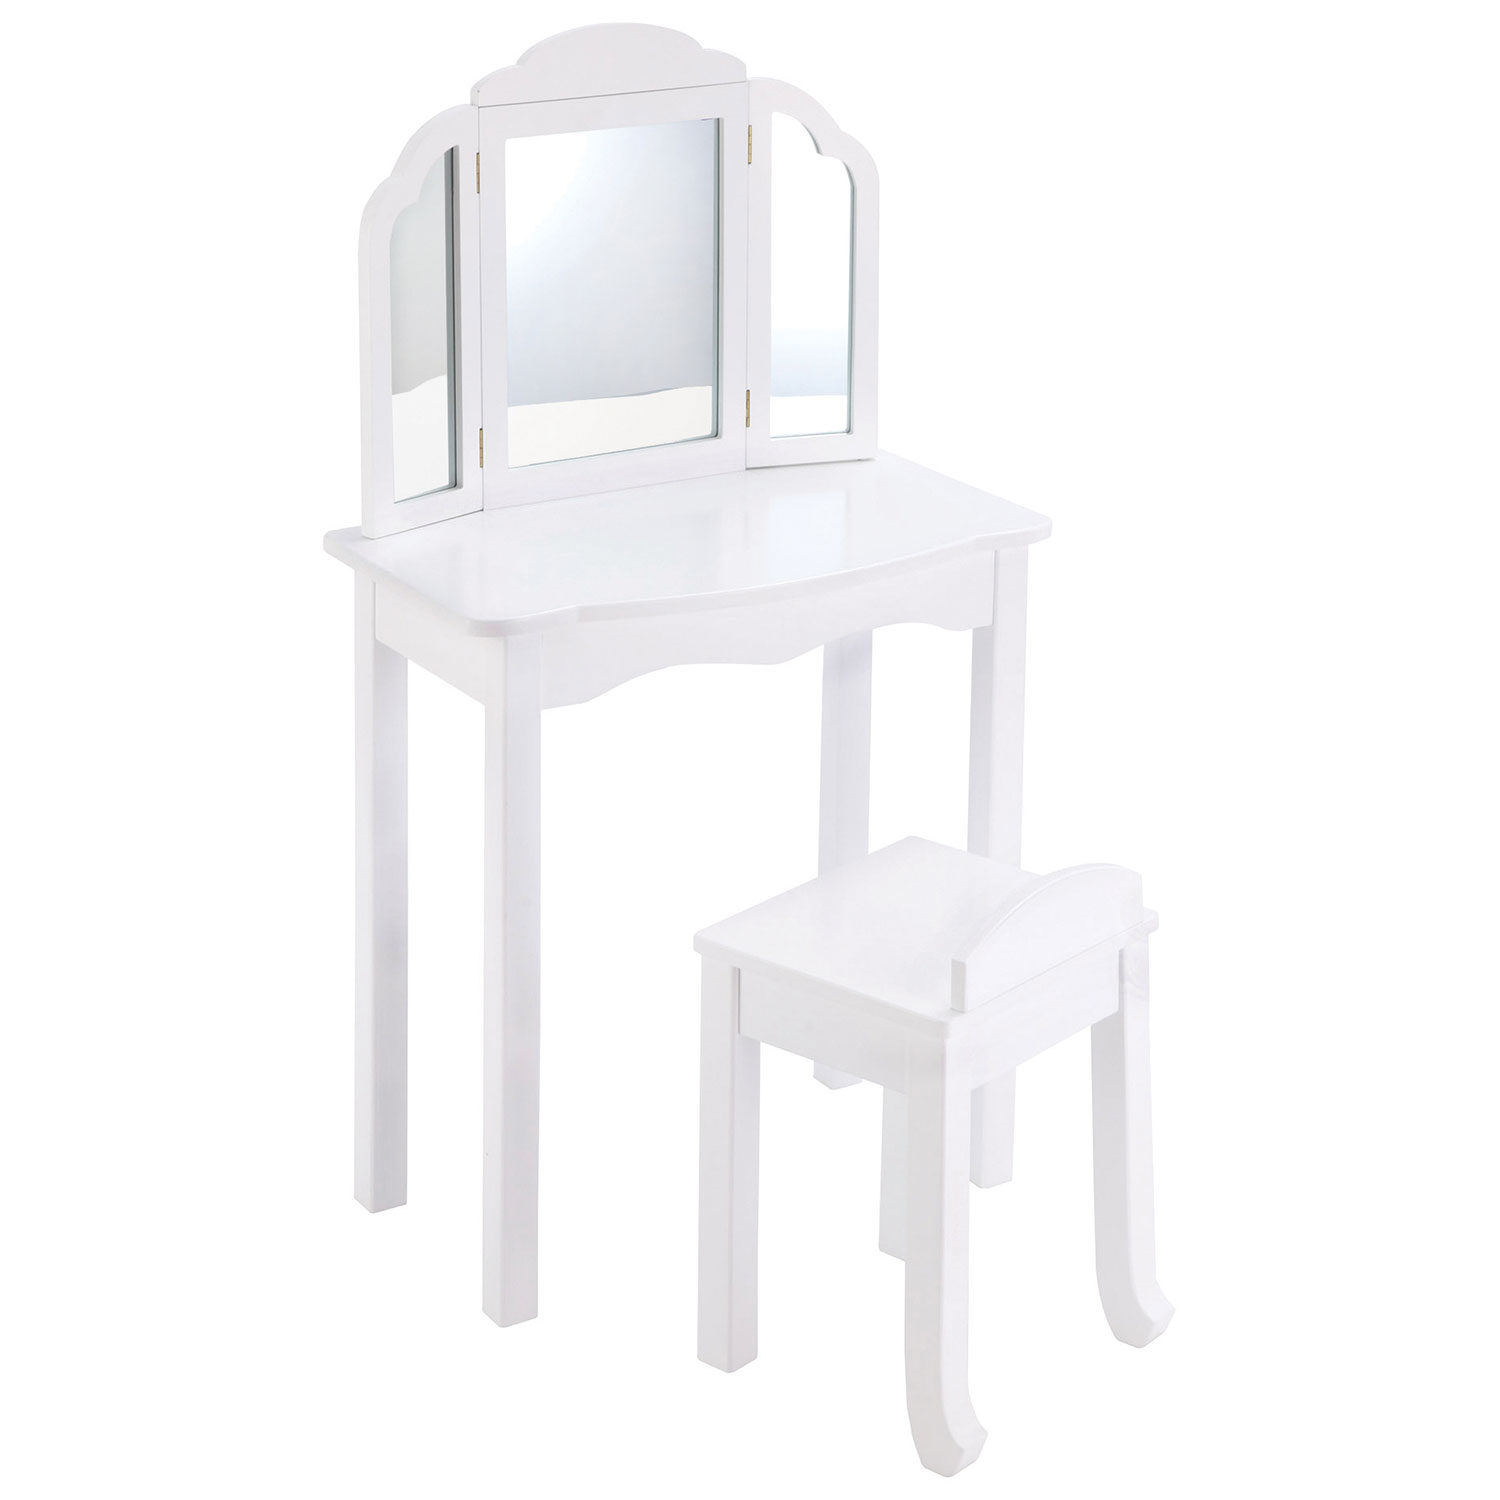 Expressions Traditional Kids Vanity Set with Mirror & Stool